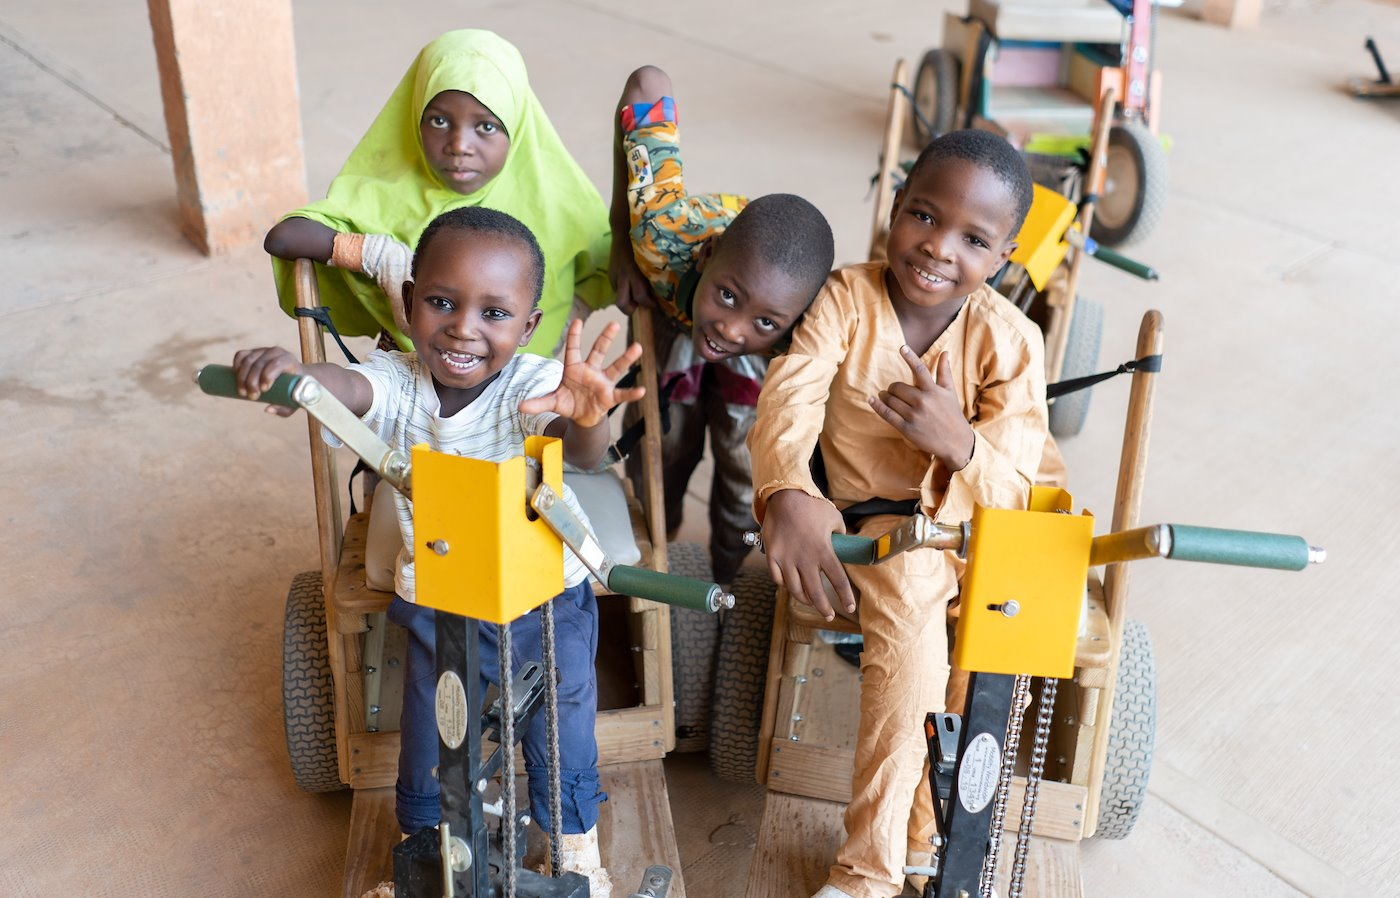 CURE Niger kids send their warm greetings to you!